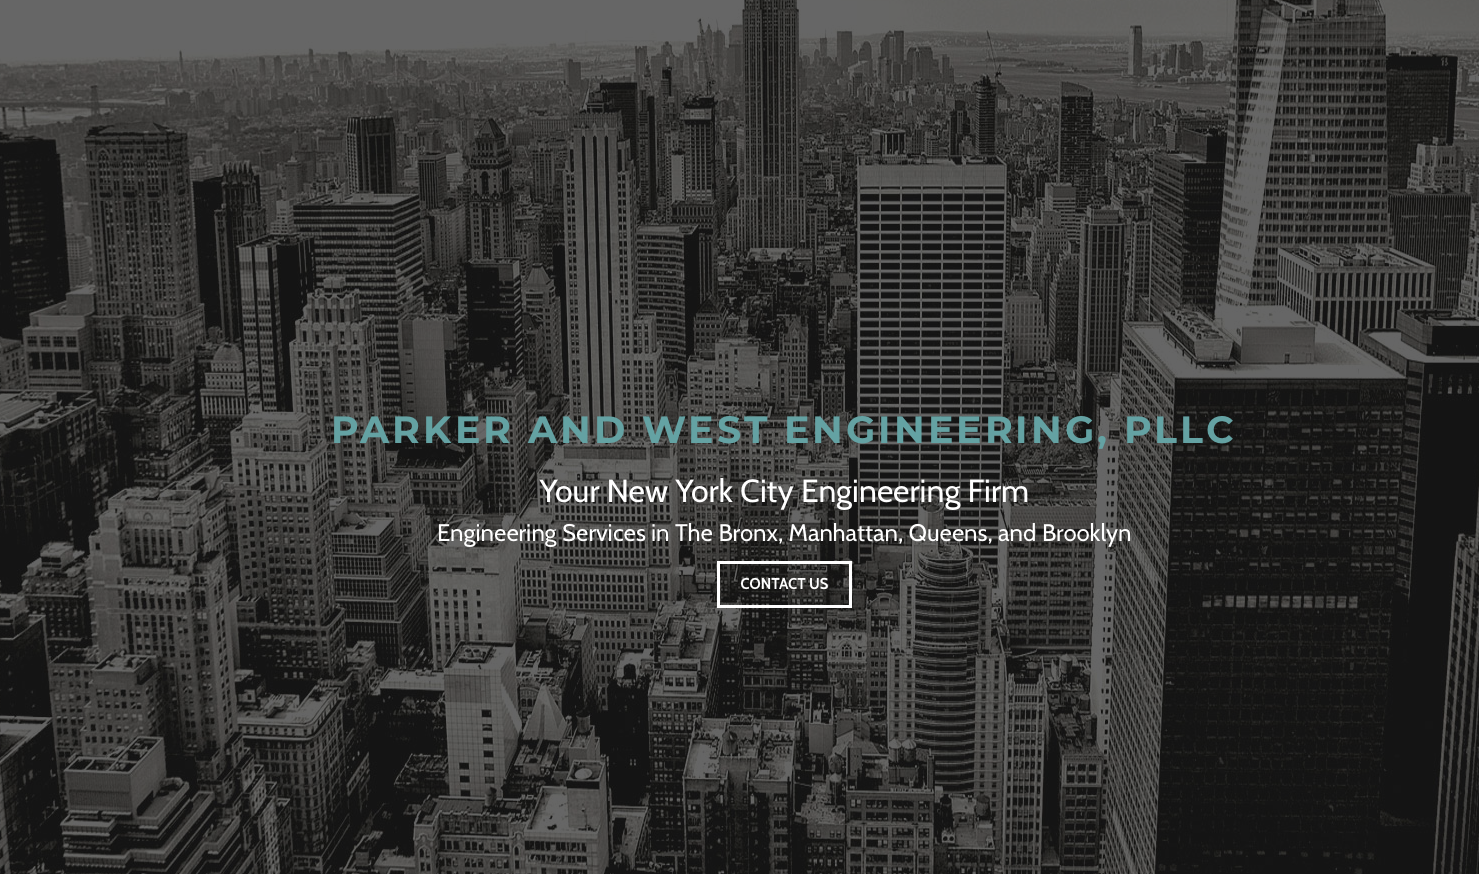 PARKER AND WEST ENGINEERING